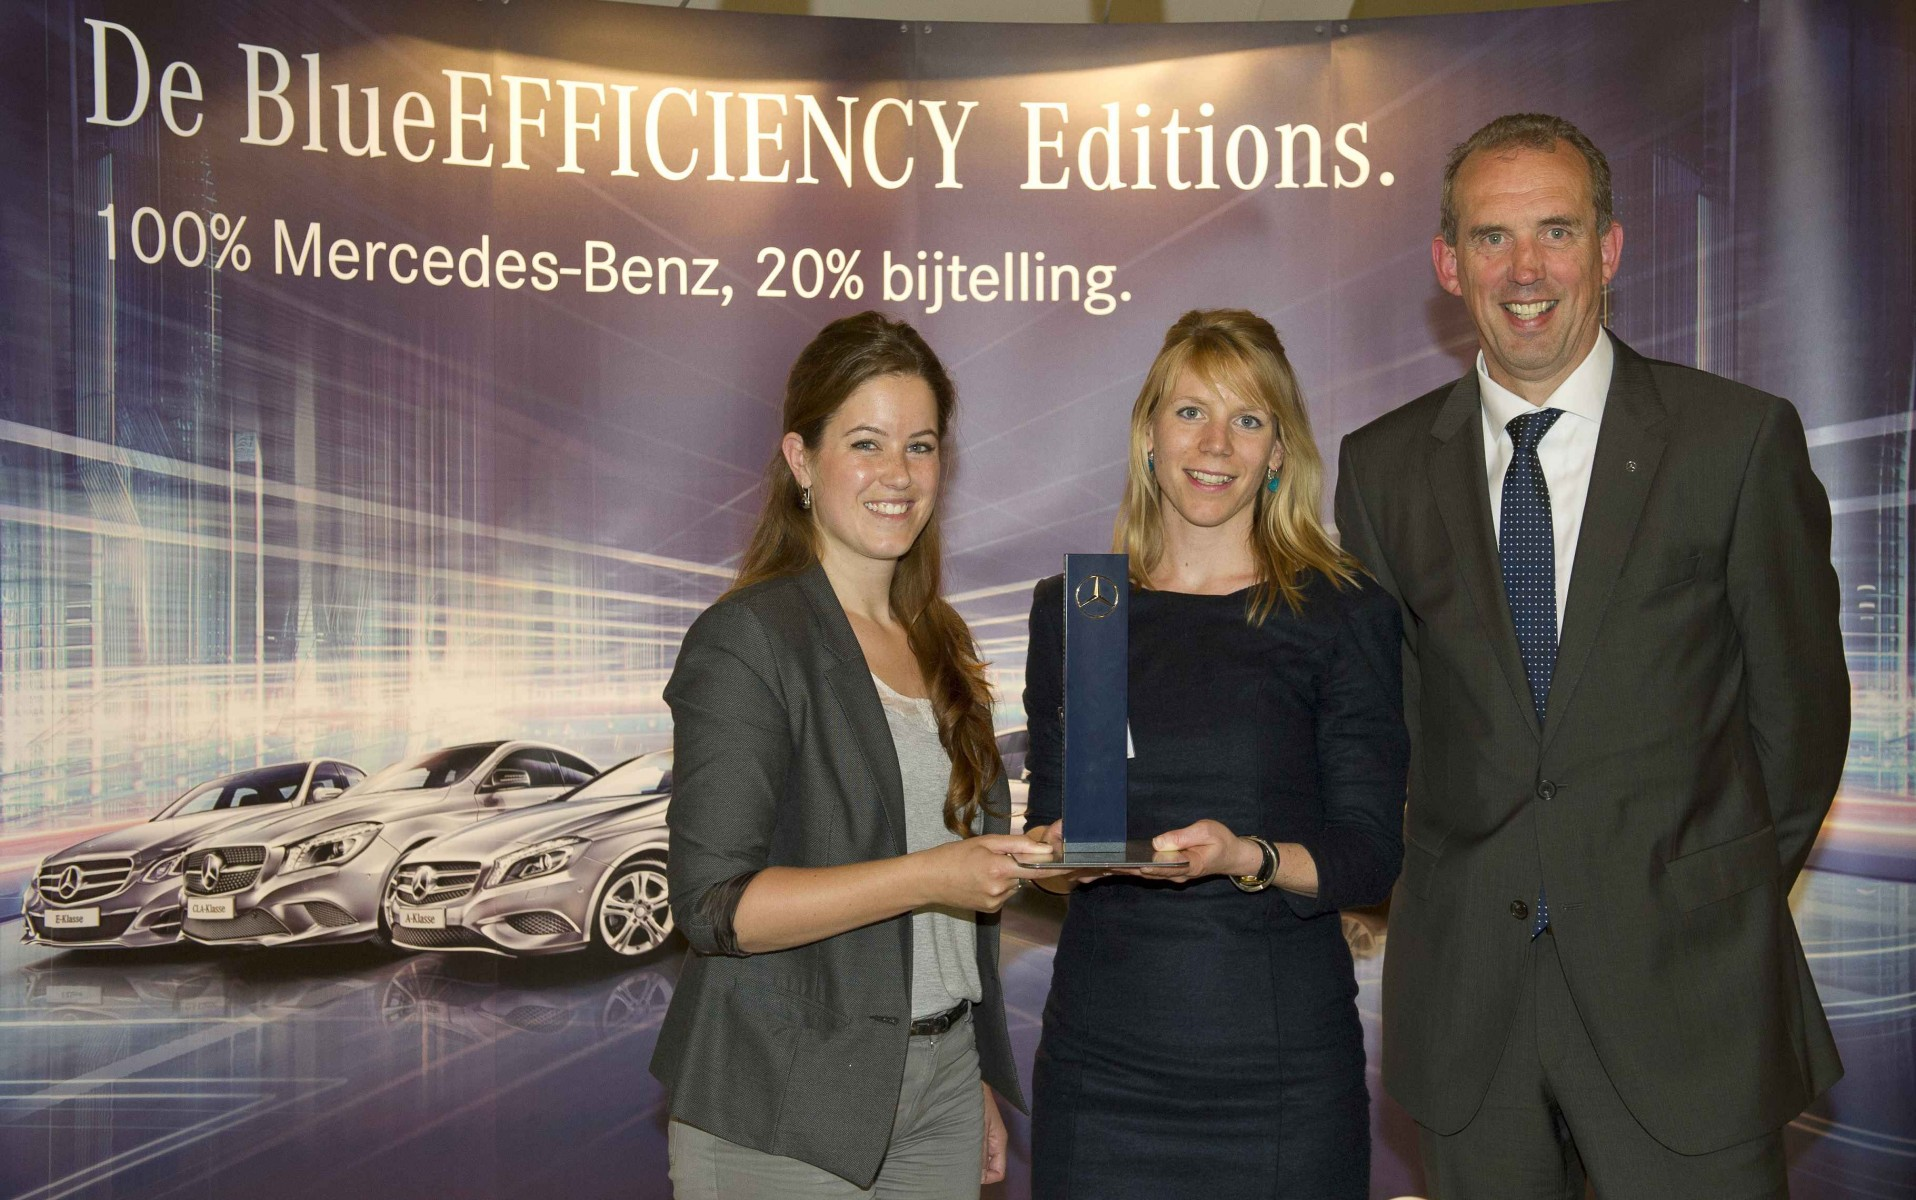 Mercedes-Benz BlueEFFICIENCY Award 2013 uitgereikt